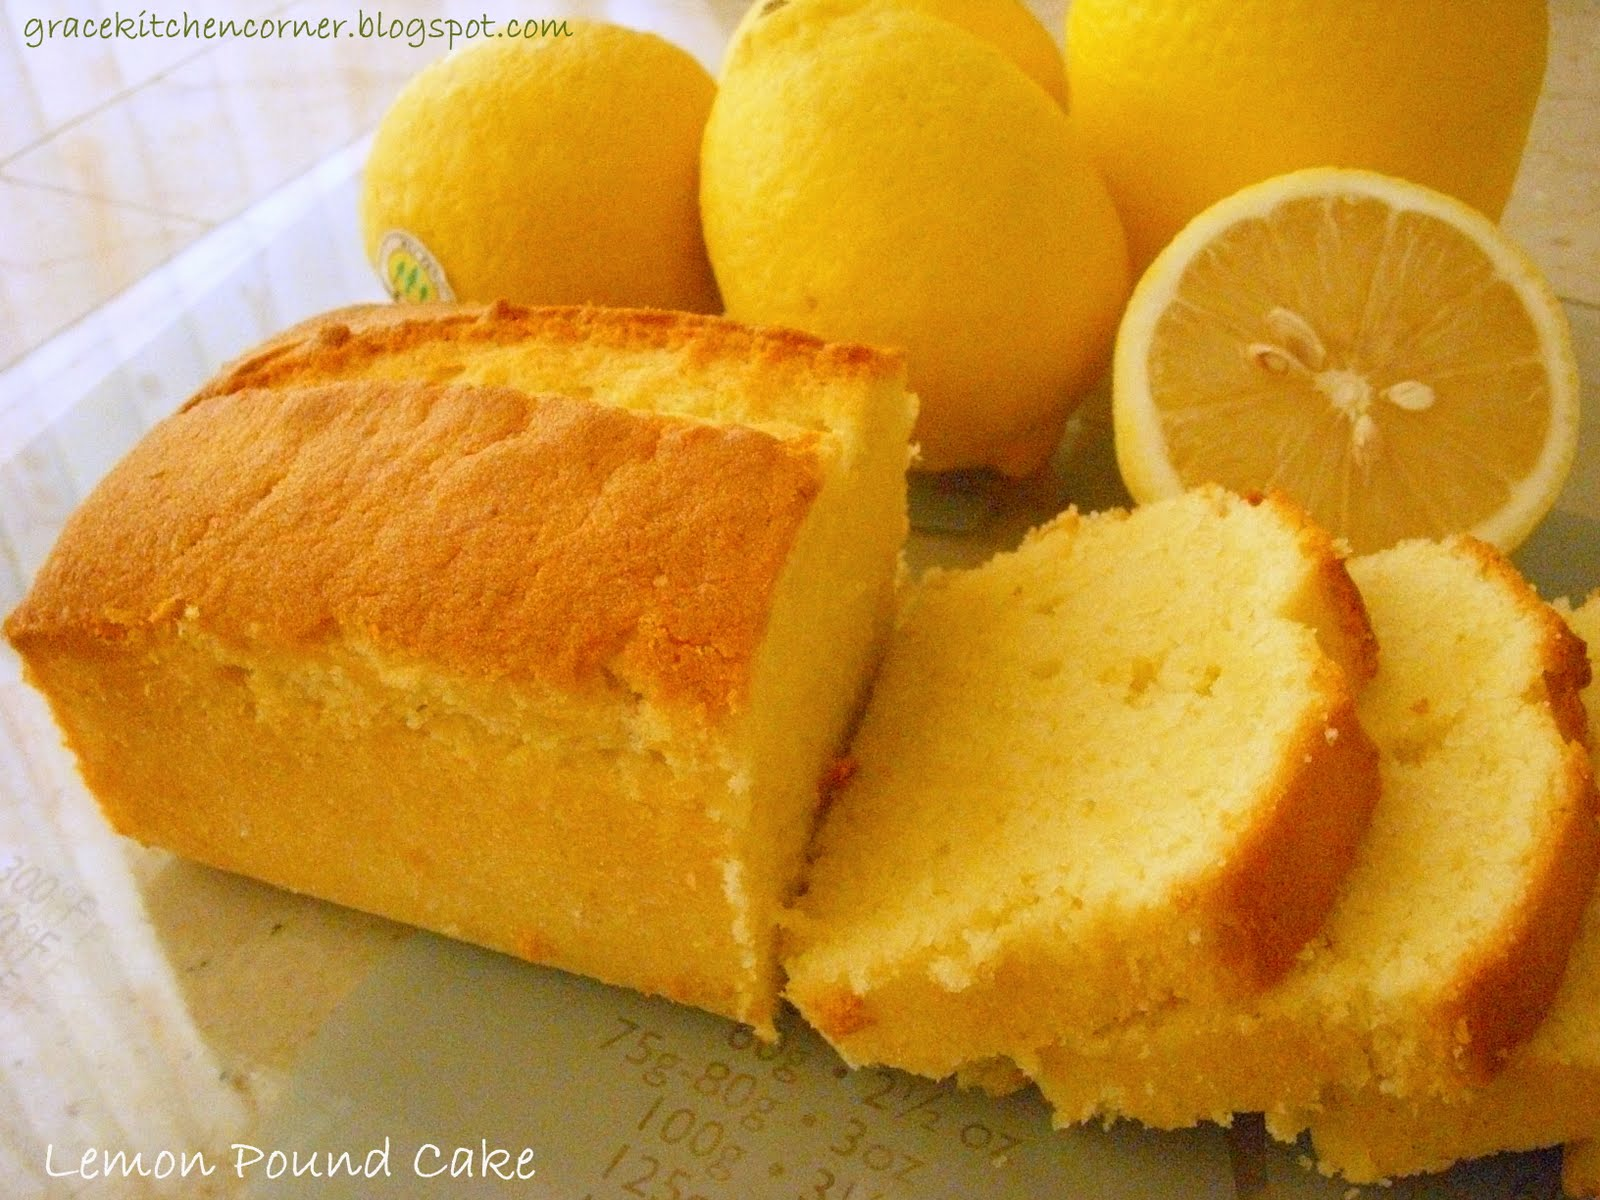 Citron Pound Cake